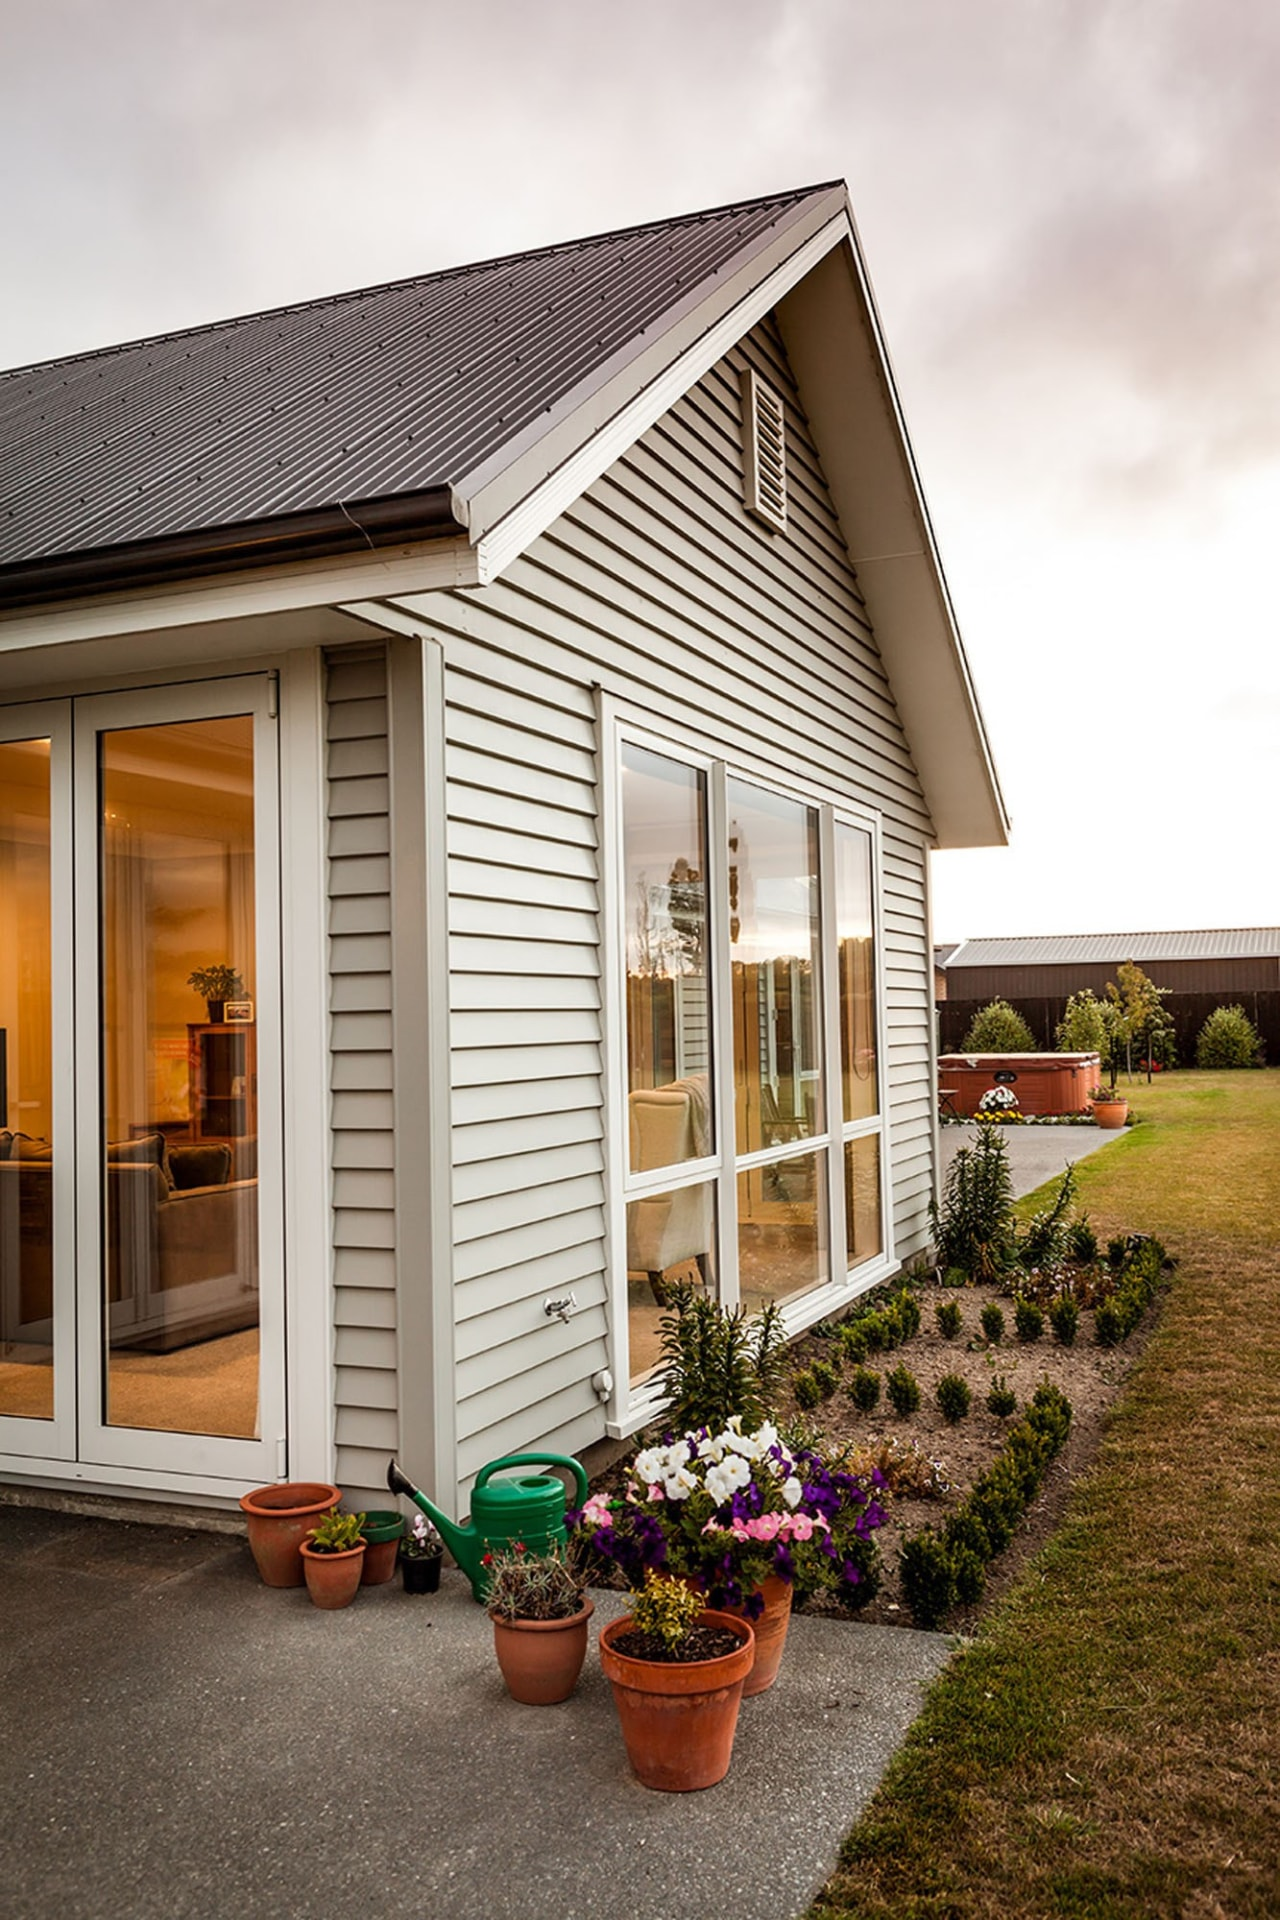 Built to last the test of time, this cottage, facade, home, house, real estate, residential area, shed, siding, window, white, brown